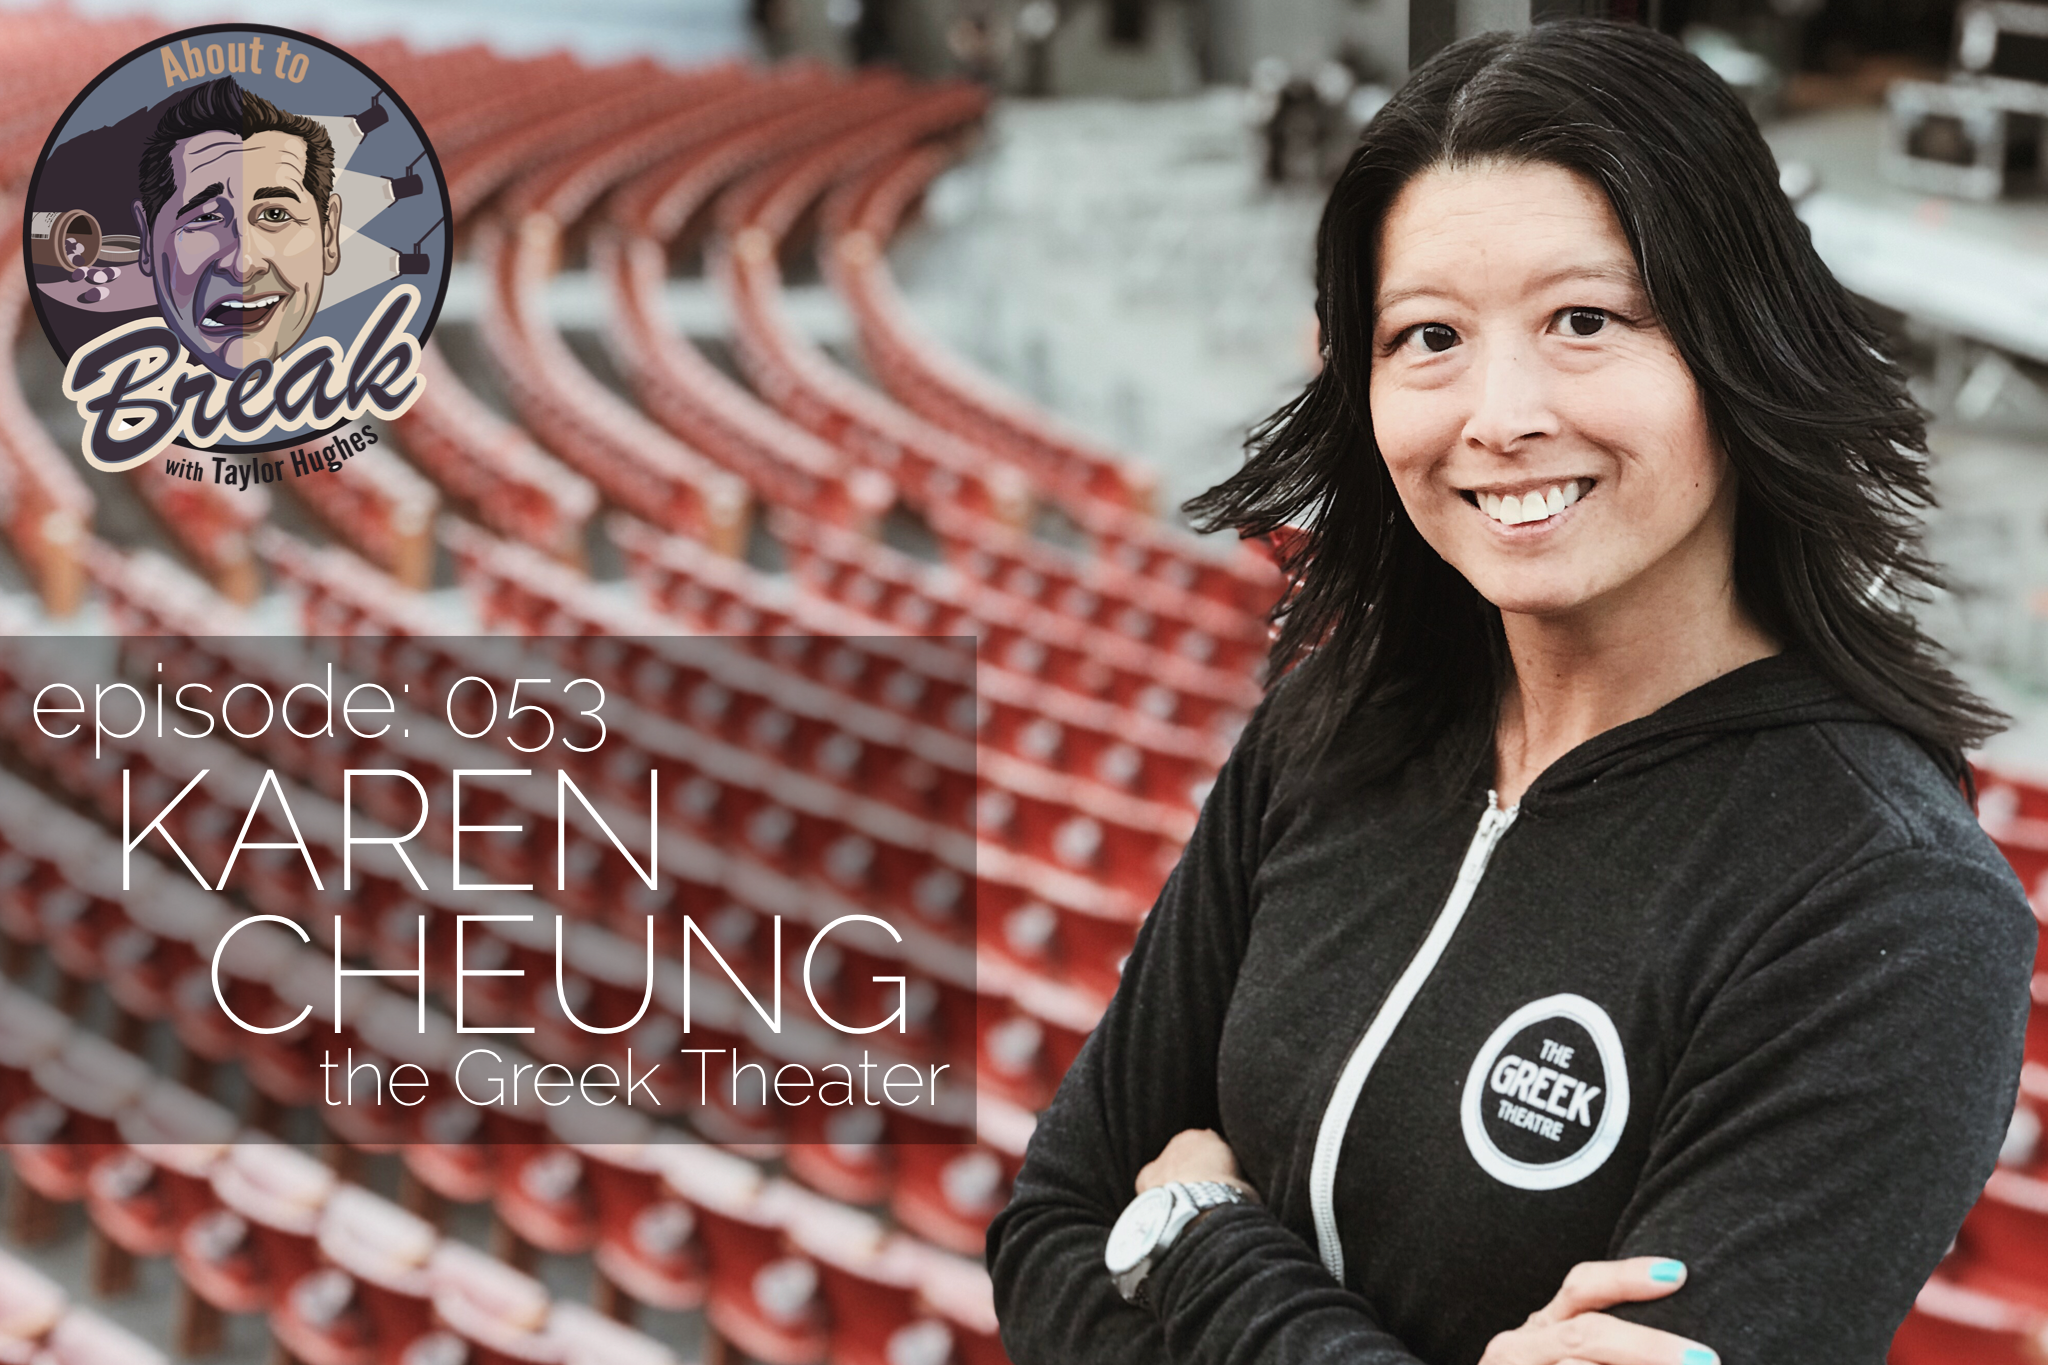 Karen is the Food and Beverage manager for the Greek theater in Los Angeles, has a brilliant business mind and also happens to be my sister in law!   In this episode Karen and I talk about: • Working with an entire staff made up of actors and screen writers • Secret tunnels under the Greek Theater • How we learned things before the internet • A tangent about conspiracy Theories • Growing up in the restaurant business • The real reason people go to bars • Stop Posturing!!! • The myth of fake it till you make it • Being genuine and present is everything • Artists are responsible for the audience they attract • Lack of humility will destroy us • Some thoughts for managers • Developing real friends in the business • the reality of Backstage • worrying about people's opinion of you and then realizing they aren't thinking about you at all! • We all just want to be heard • Succeeding as a woman in a male dominated industry • Letting passion be the driver • The power of communal events  ... and remembering to be grateful  Please take a moment to rate, share and subscribe to the show on Apple Podcasts. It makes a huge difference!  Love the show? For as little as $1 a month you can   BECOME A PRODUCER